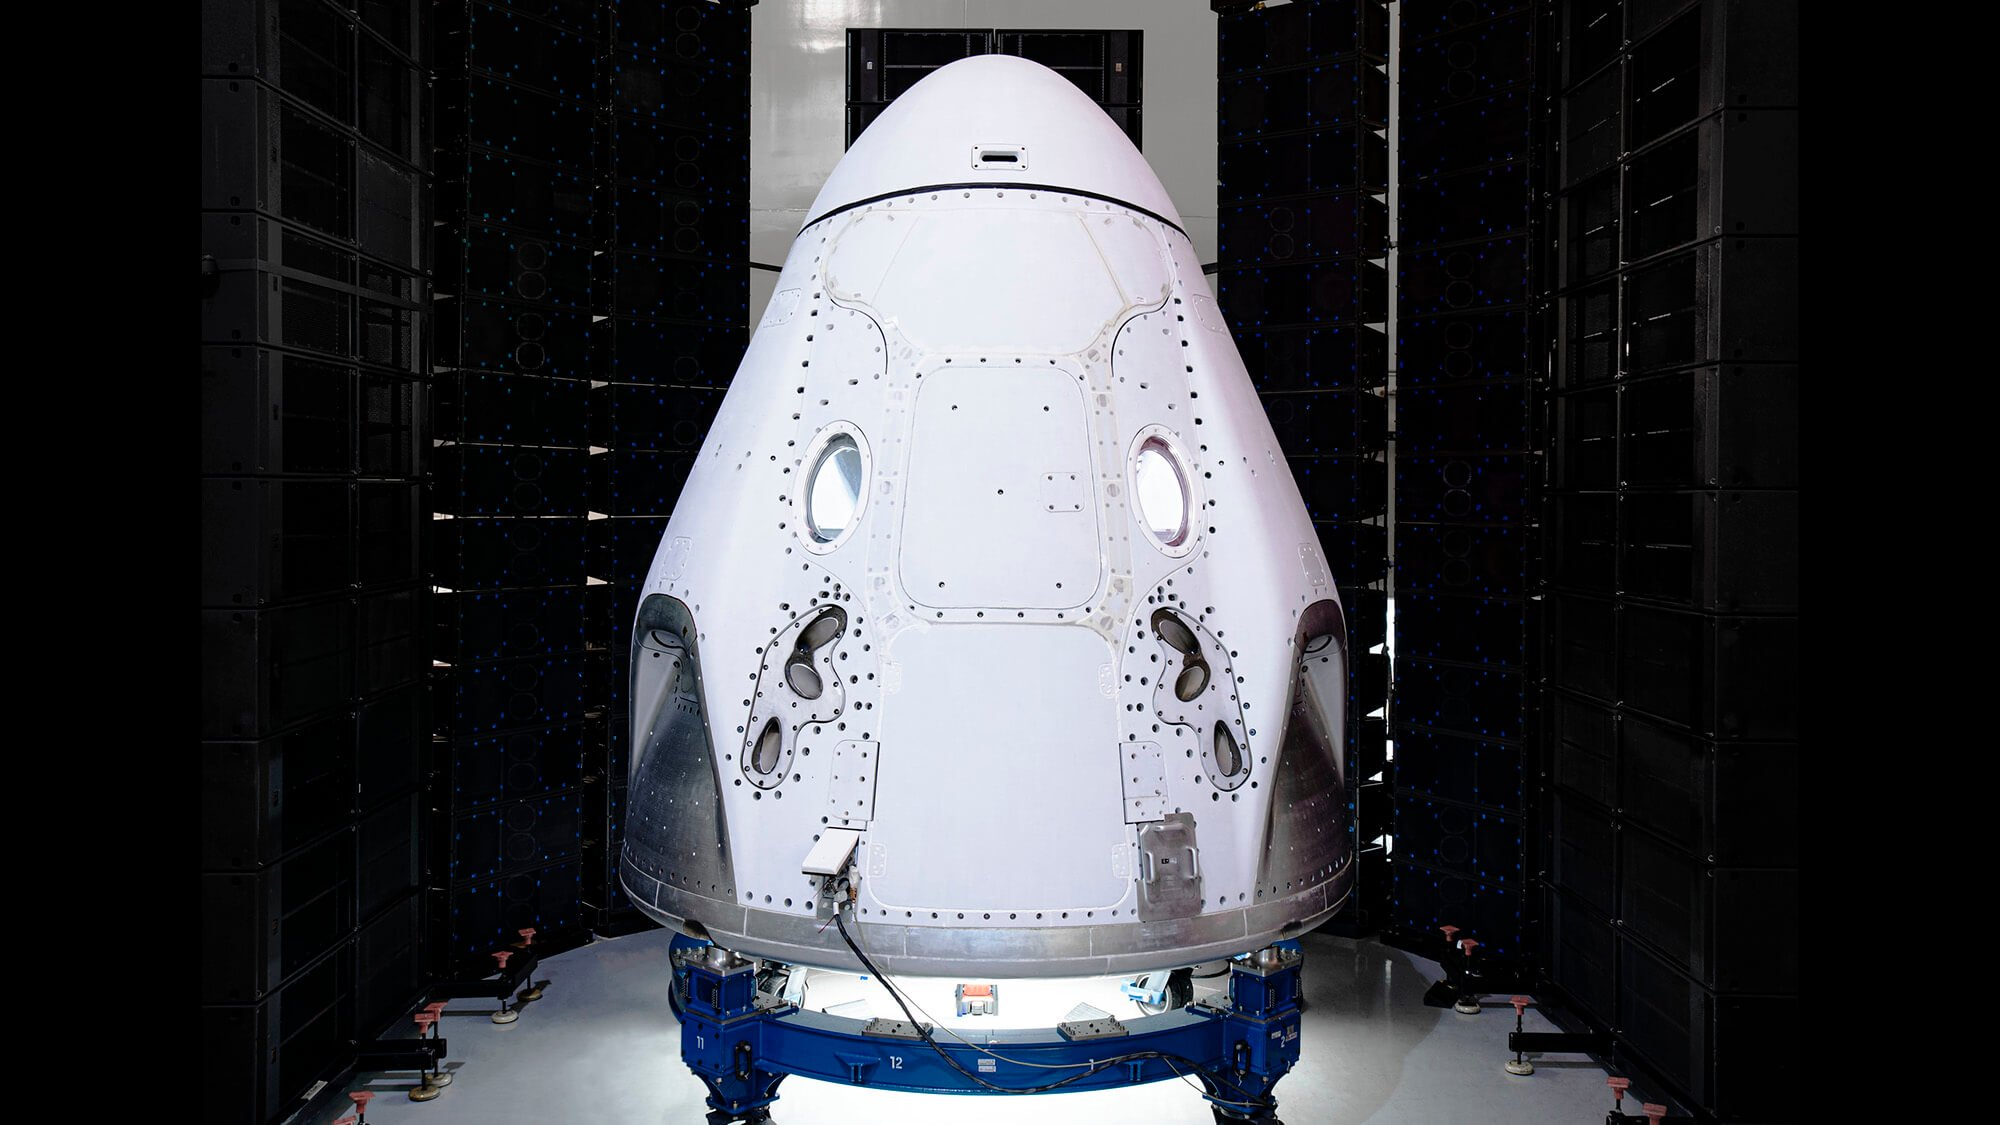 SpaceX can reuse the Falcon 9 and Dragon Crew to deliver people to the ISS